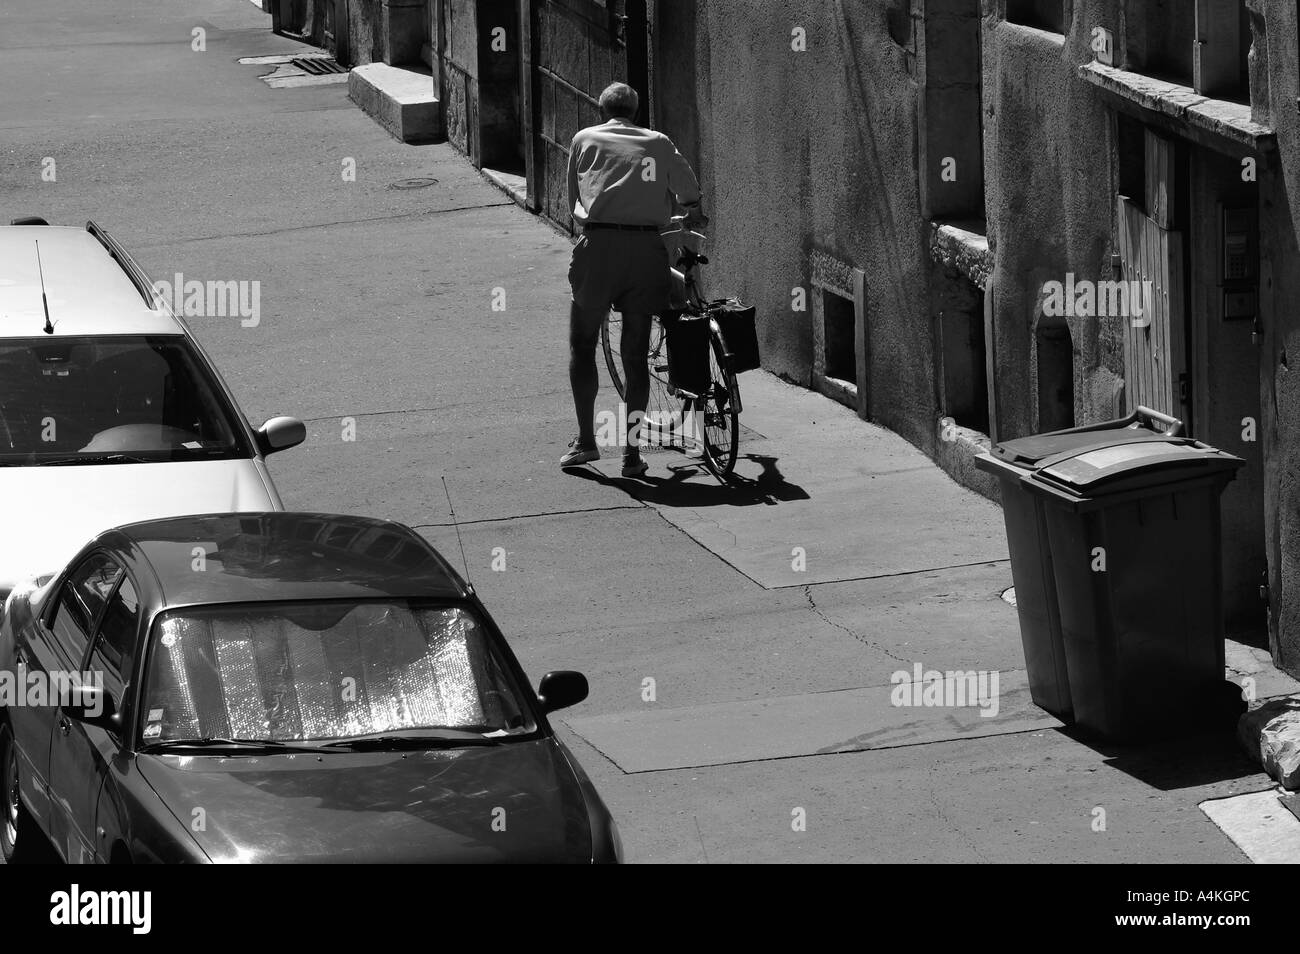 Old man walking with bike on sidewalk, rear view - Stock Image